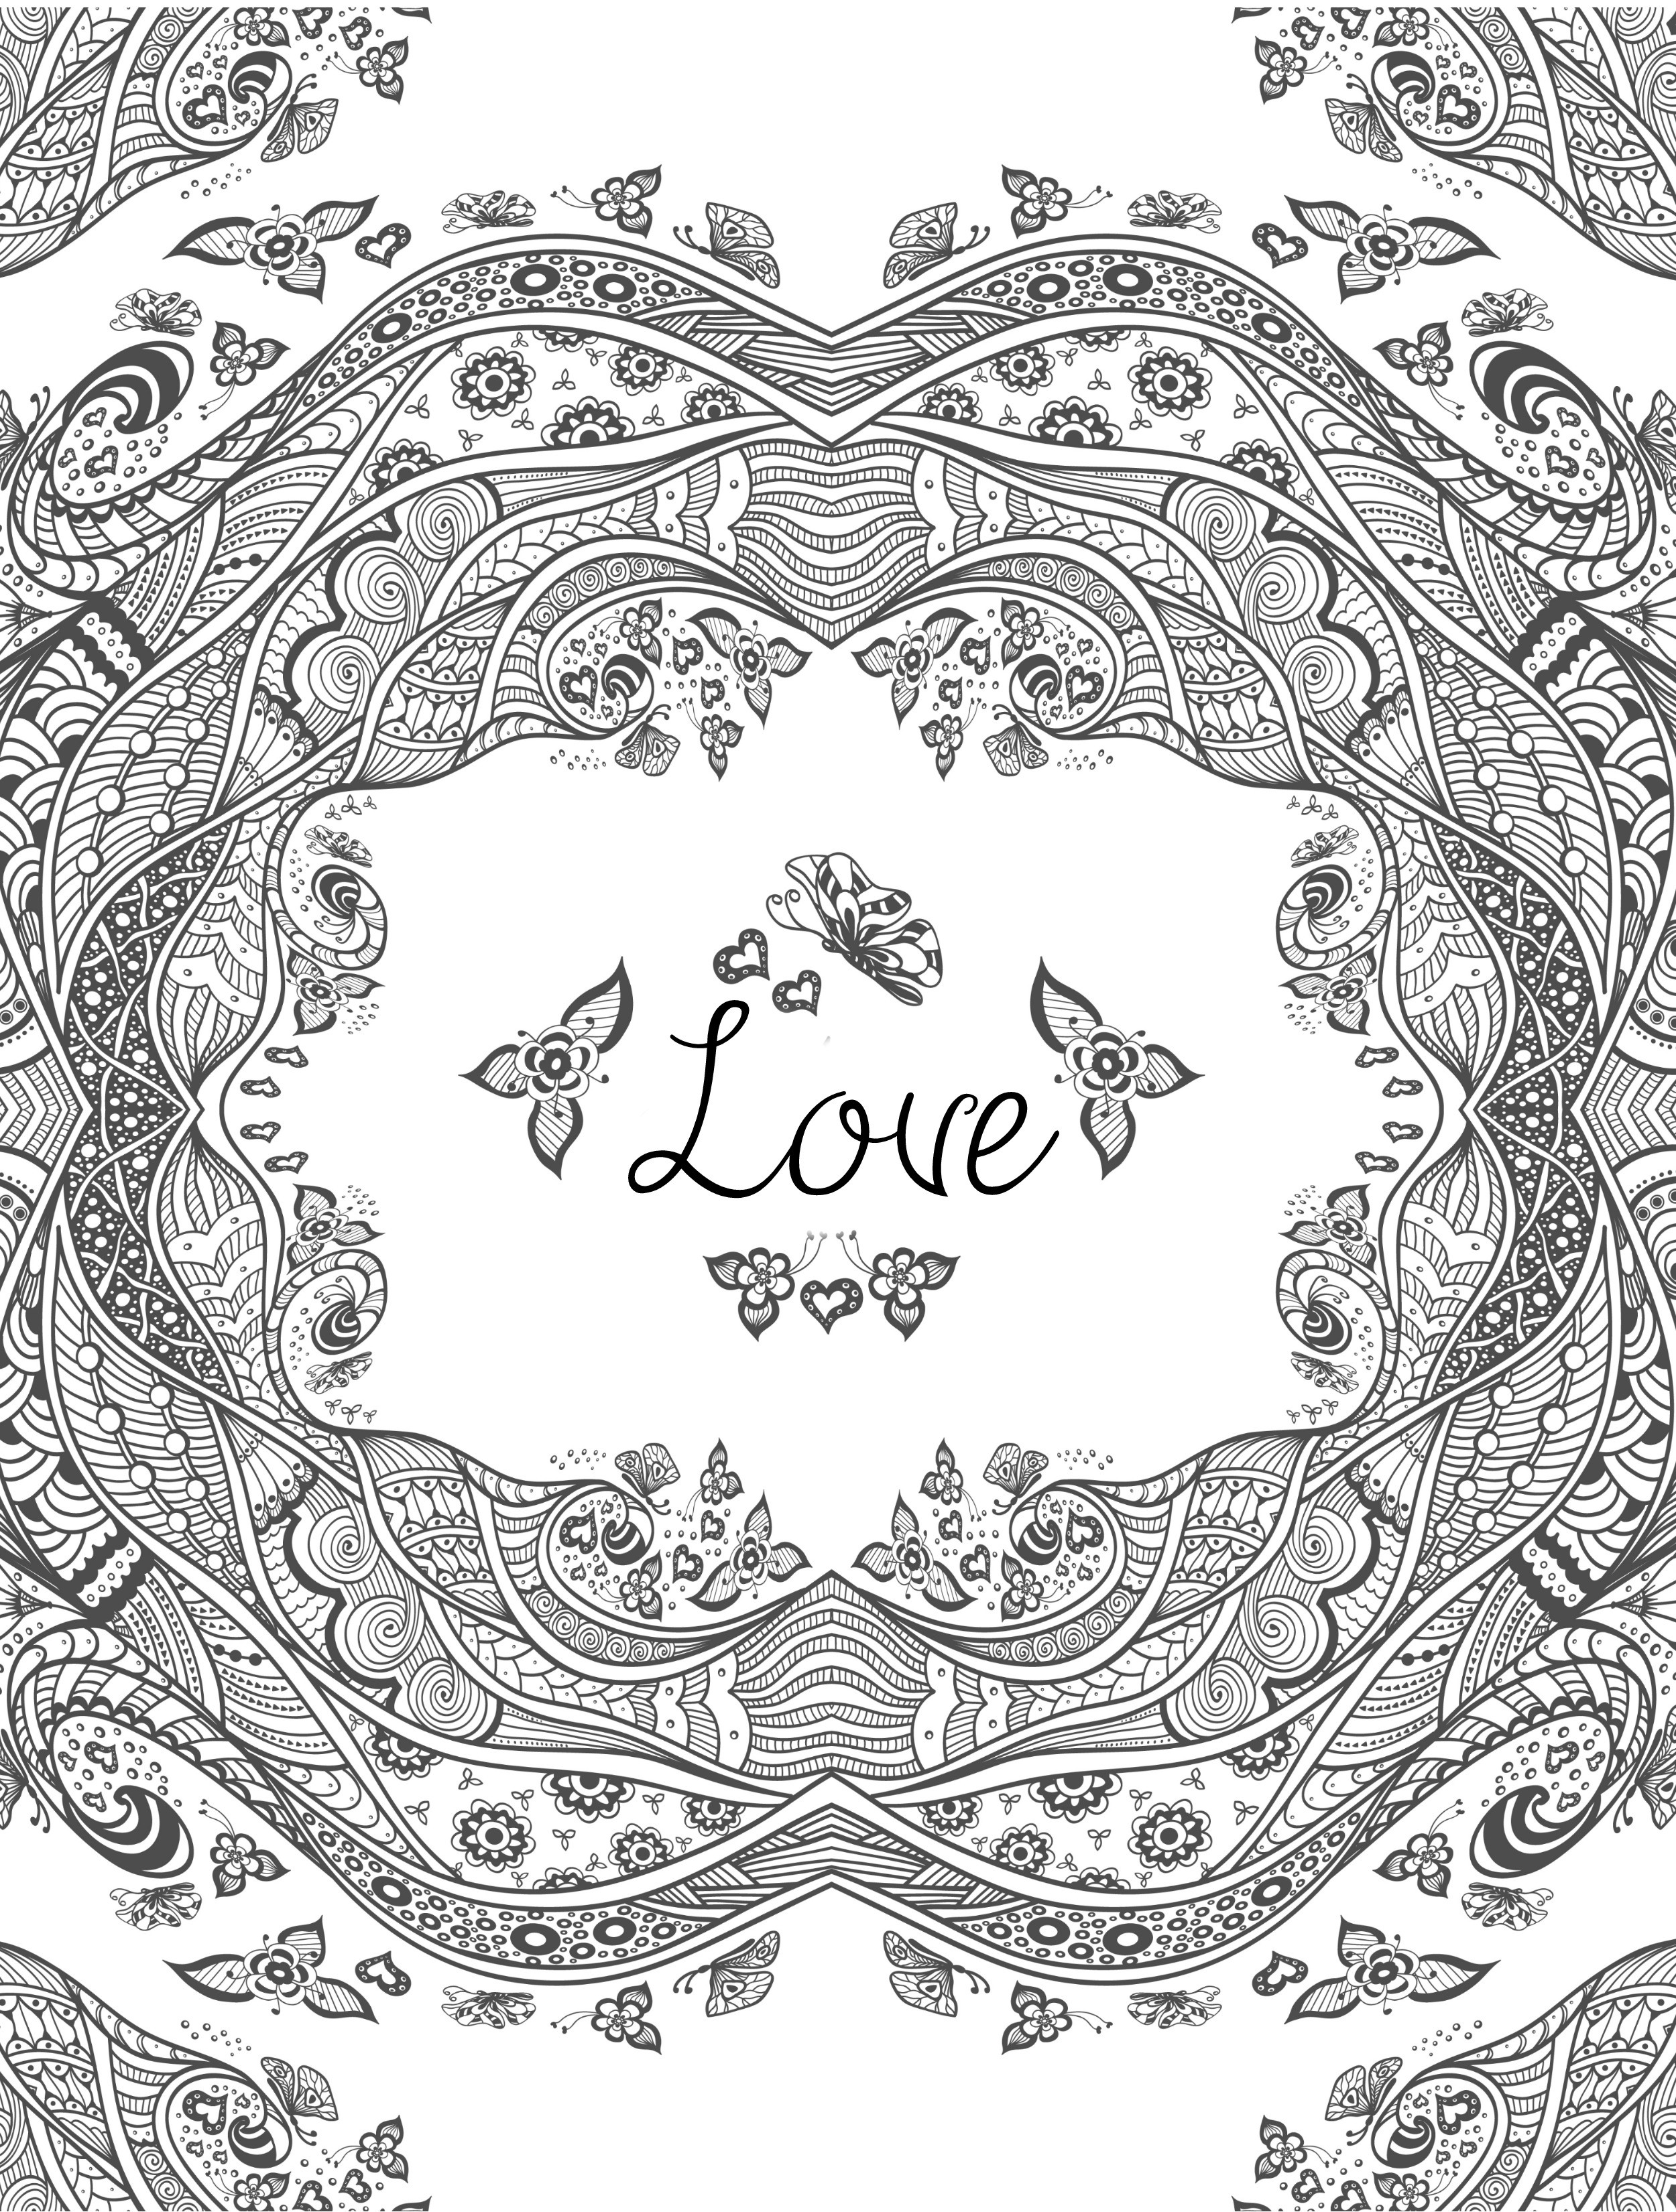 Free Coloring Pages For Adults Printable  20 Free Printable Valentines Adult Coloring Pages Nerdy